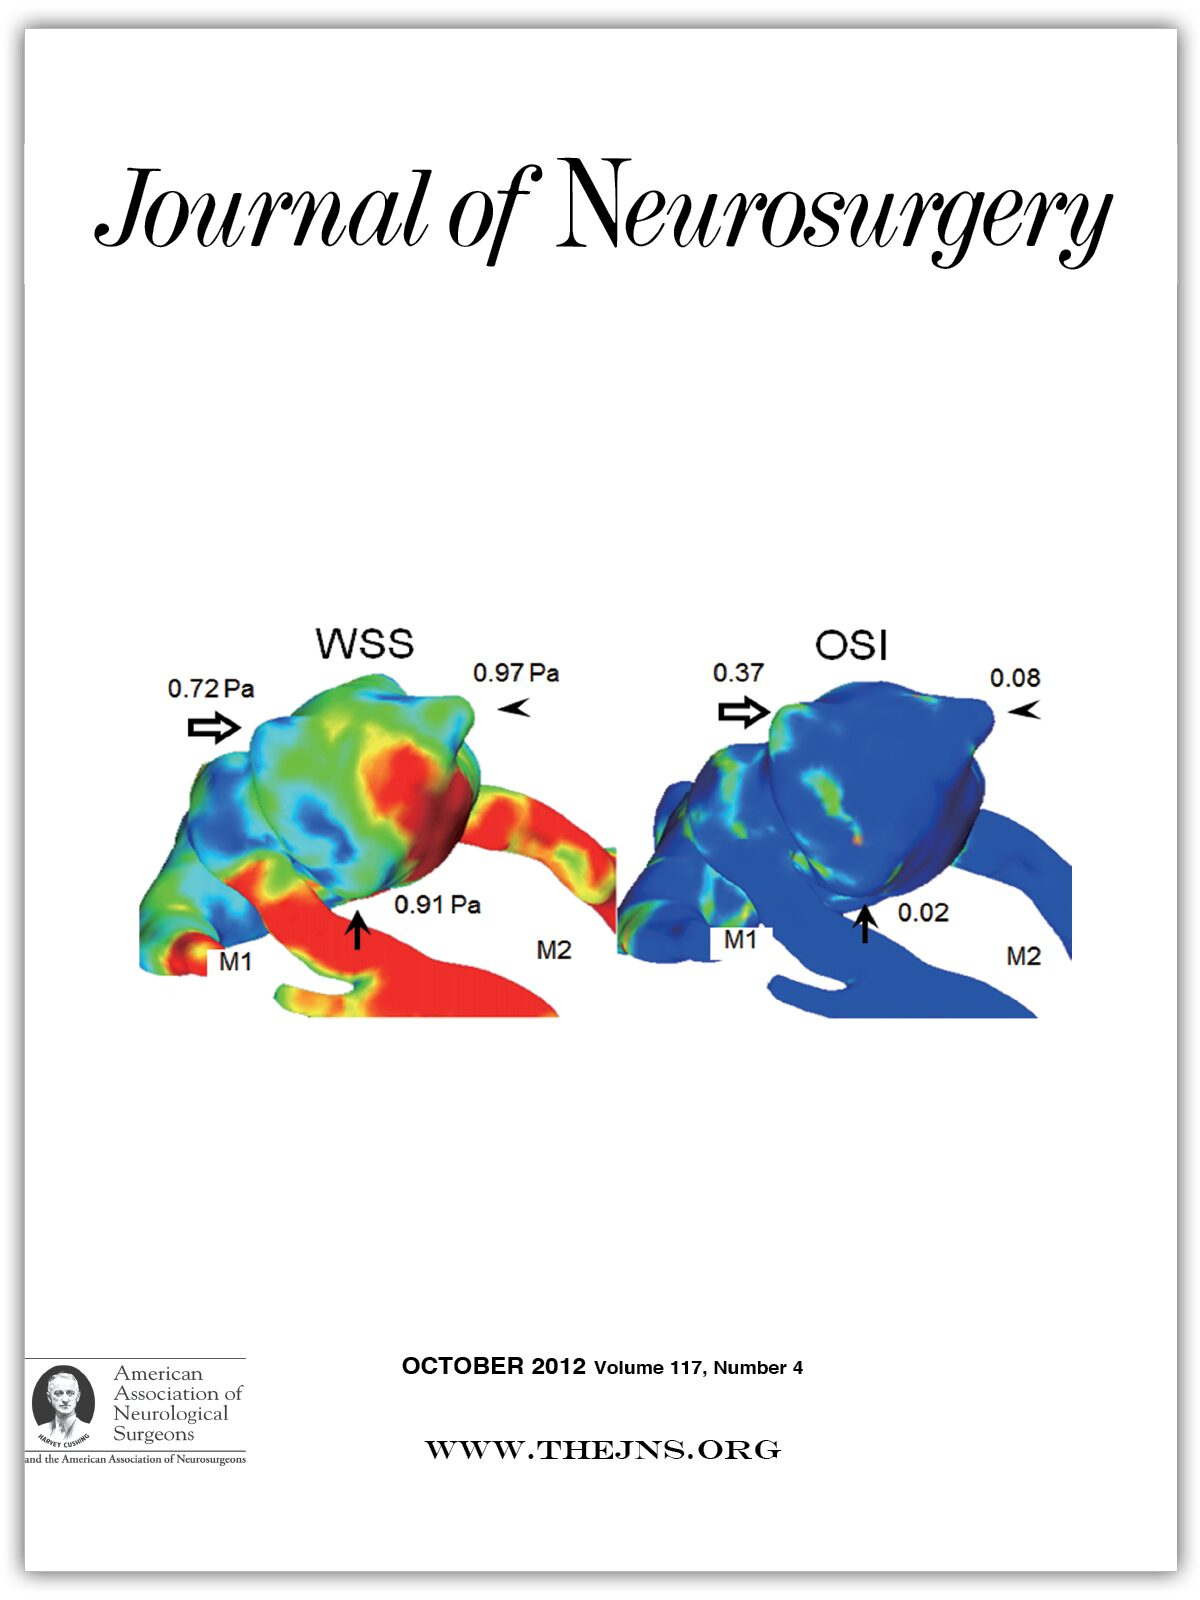 Intermuscular Lipoma Of The Gluteus Muscles Compressing The Sciatic Nerve An Inverted Sciatic Hernia In Journal Of Neurosurgery Volume 117 Issue 4 2012